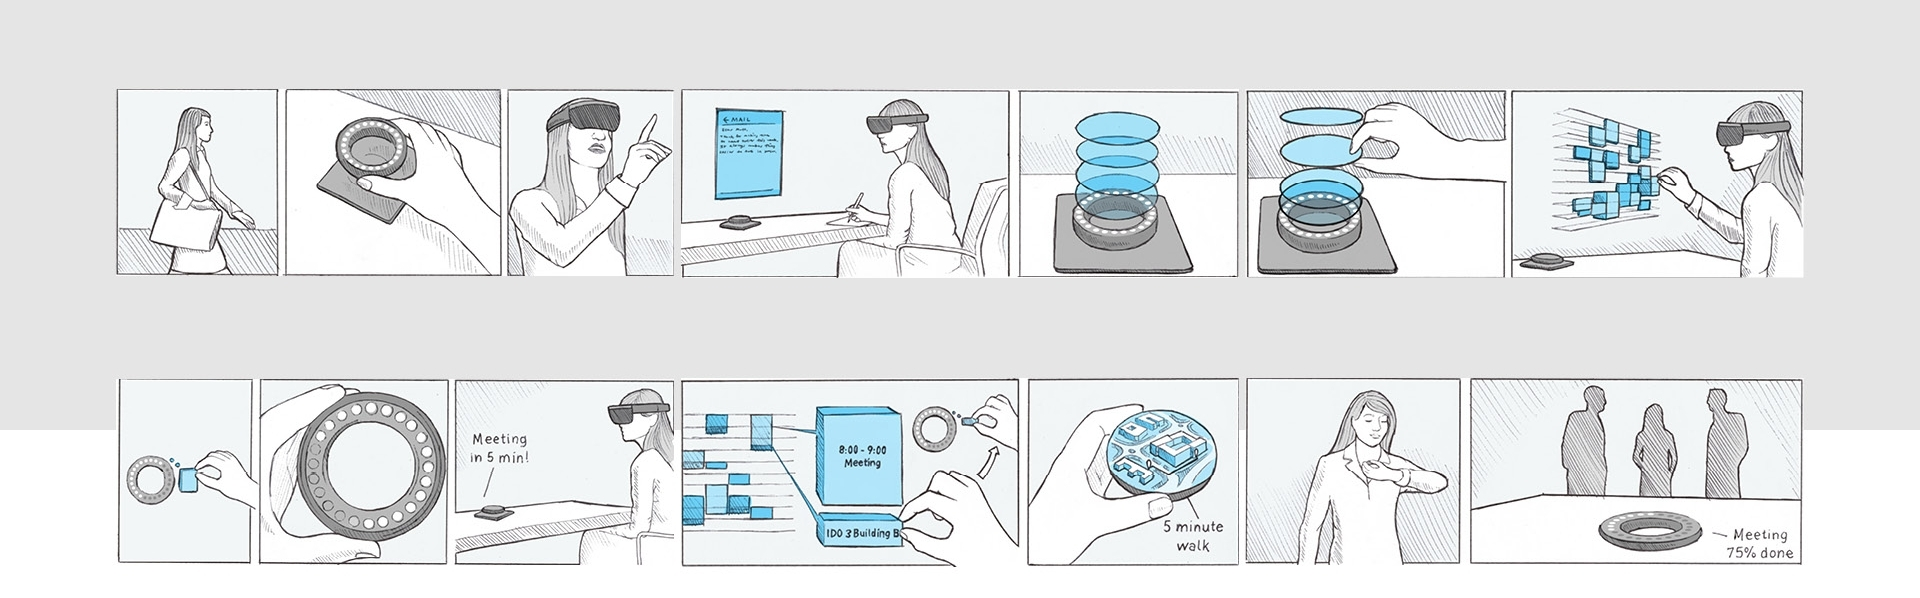 Storyboarding was used to map out the user flow of the product.